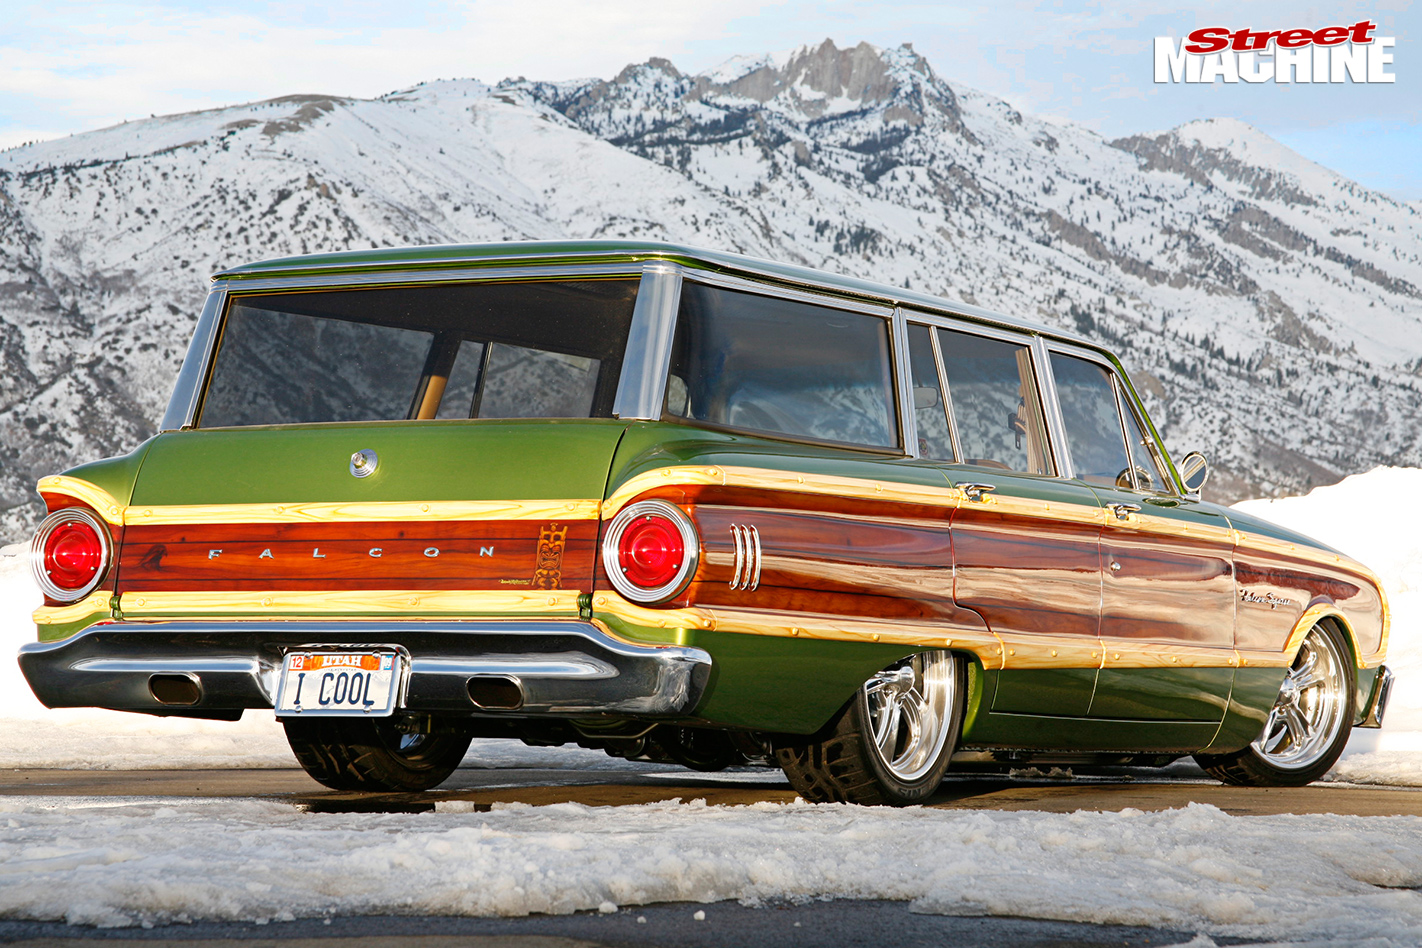 1963-FORD-FALCON-SQUIRE-WAGON-rear